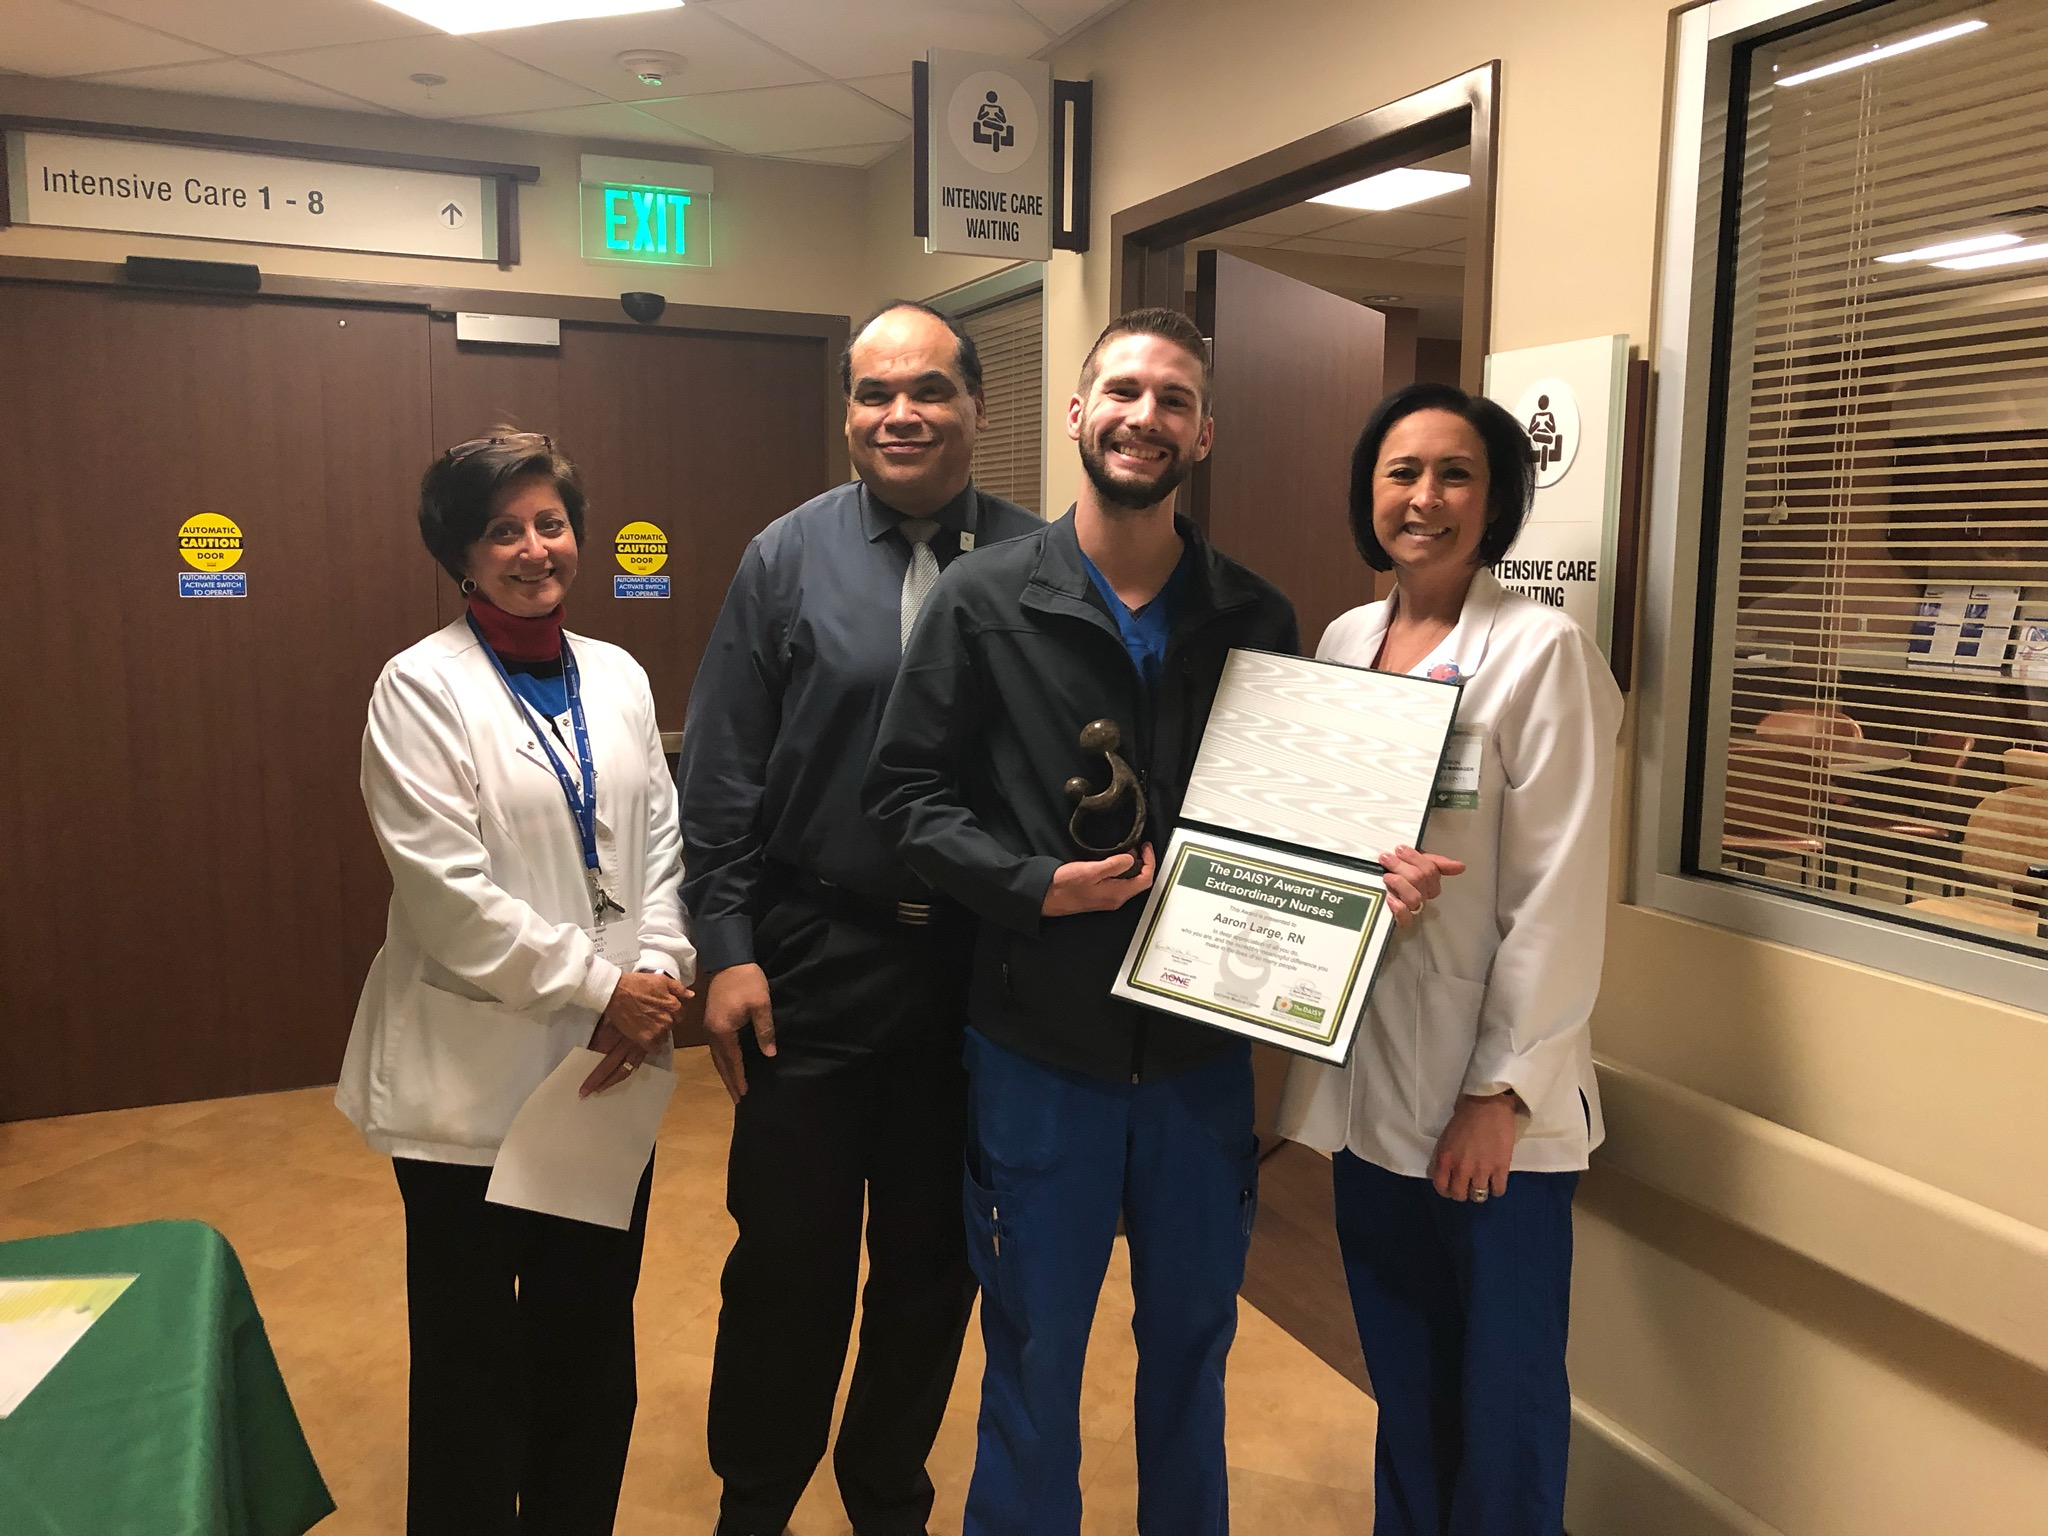 Aaron Large, RN, BSN, is presented the DAISY award for exceptional nursing.